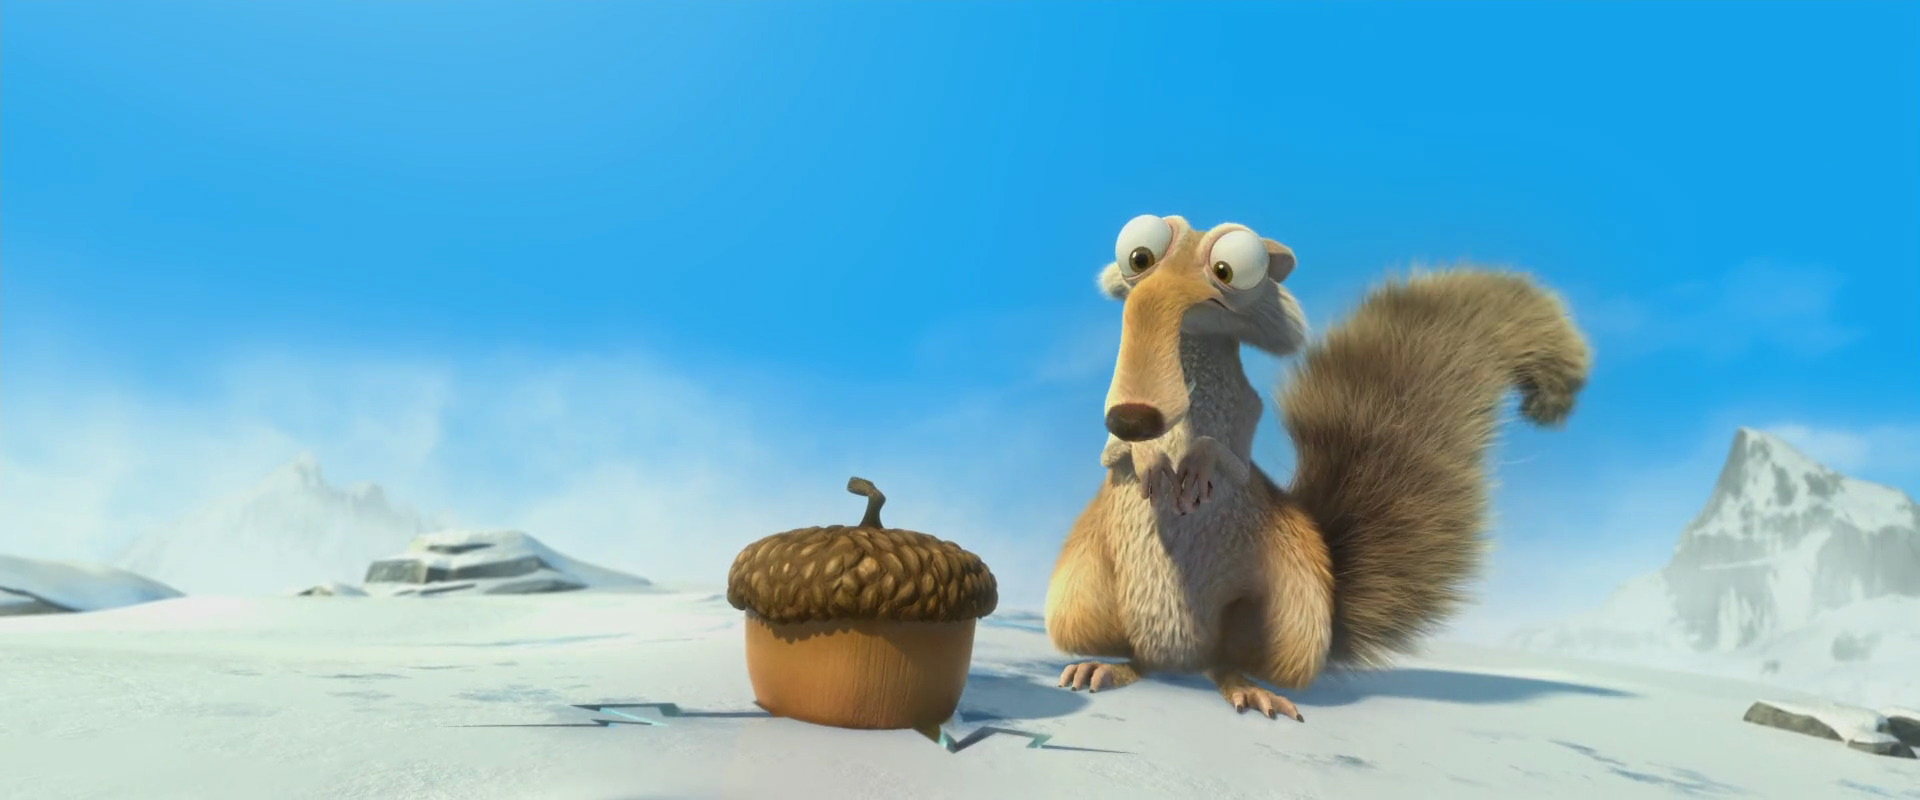 ice-age4-disneyscreencaps.com-39